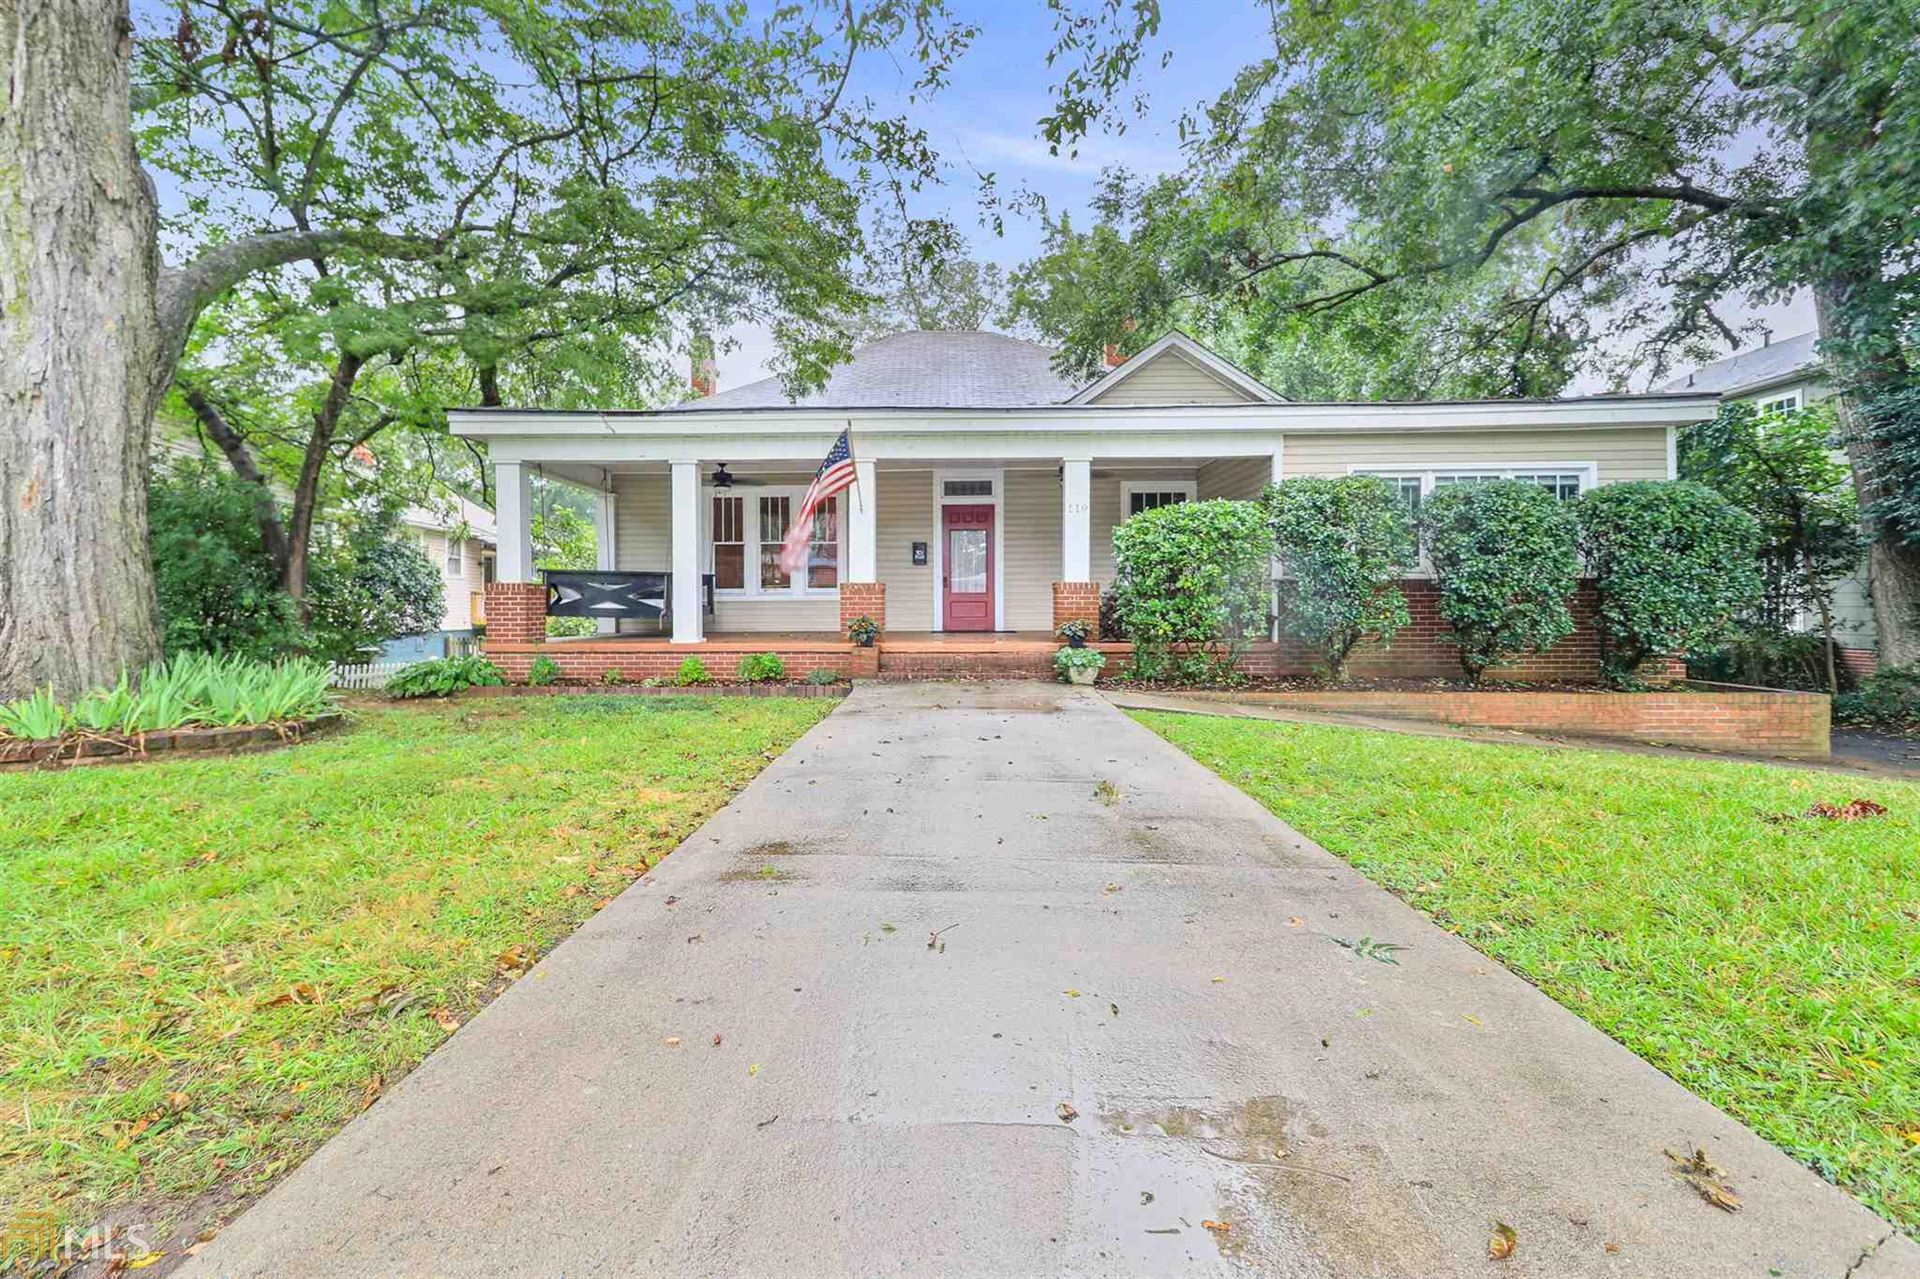 119 South St, Carrollton, GA 30117 - MLS#: 8858884